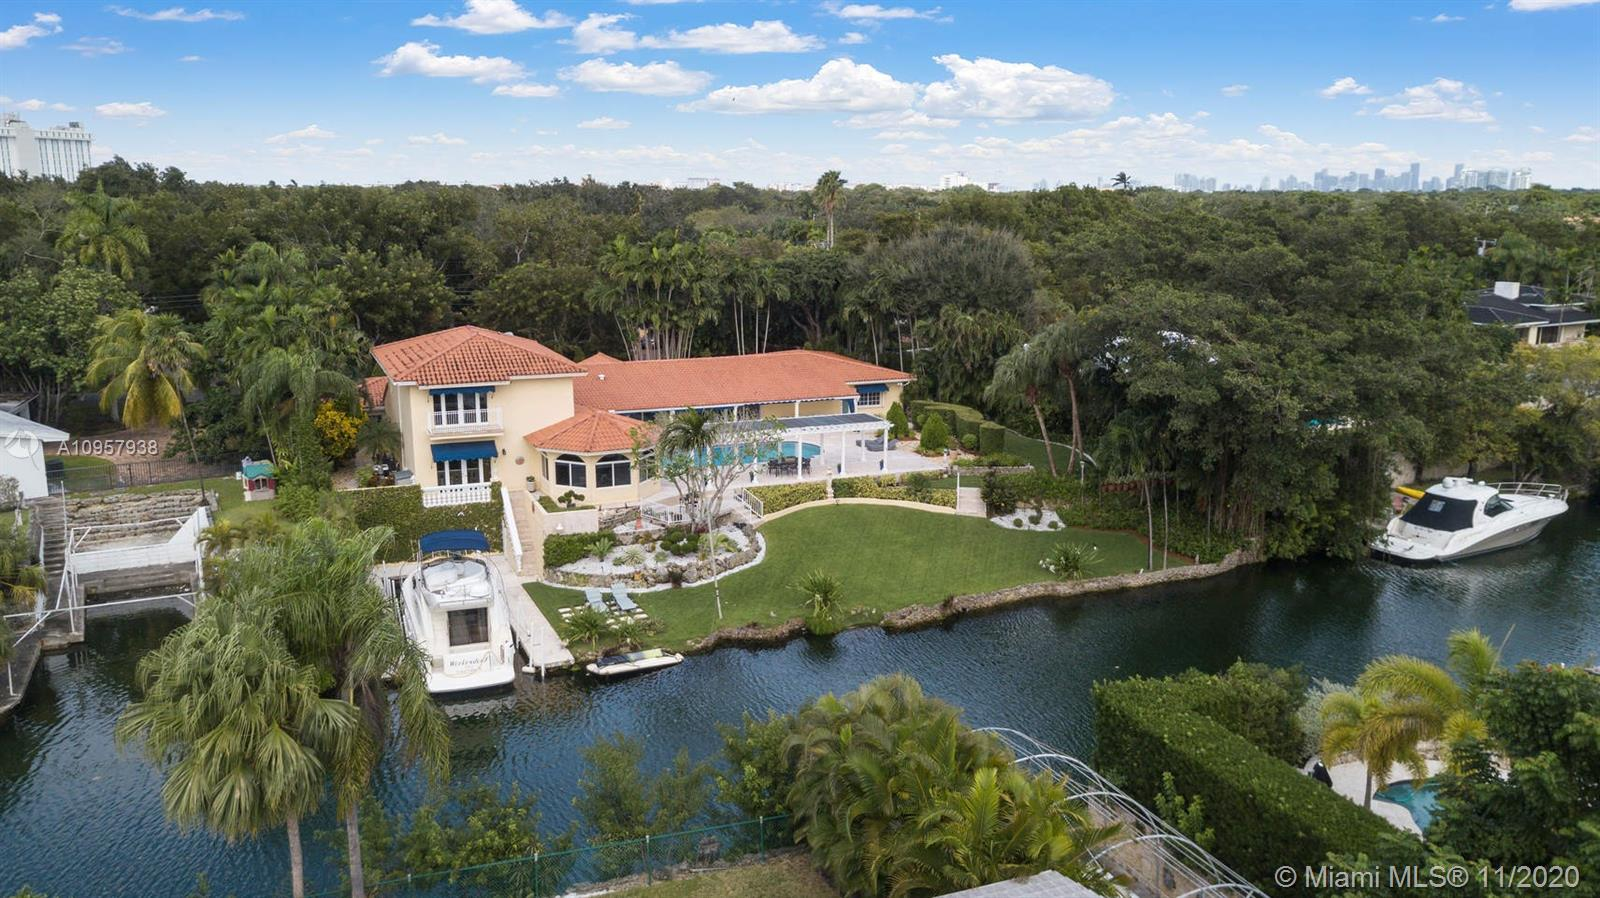 Beautiful Coral Gables estate on the prestigious Coral Gables waterway. Natural light floods this 5/5.5 home that is set up perfectly for indoor & outdoor entertaining. The oversized 22,800 sqft lot allows for the meticulously maintained gardens, 149ft of water frontage & expansive pool patio. The grandfathered coral rock cut out boat slip accommodates a 45ft, 13 beam boat. Formal living, dining room & kitchen look out to the pool & water. Separate family room with it's own additional summer kitchen, ideal for entertaining guests. Choice of two master bedroom suites, the lower level master boasts an elegant spa bathroom with pool views. The second master encompasses the whole upper floor, with a balcony looking over the canal. Desirable split bedrooms and a two car garage. Simply stunning.